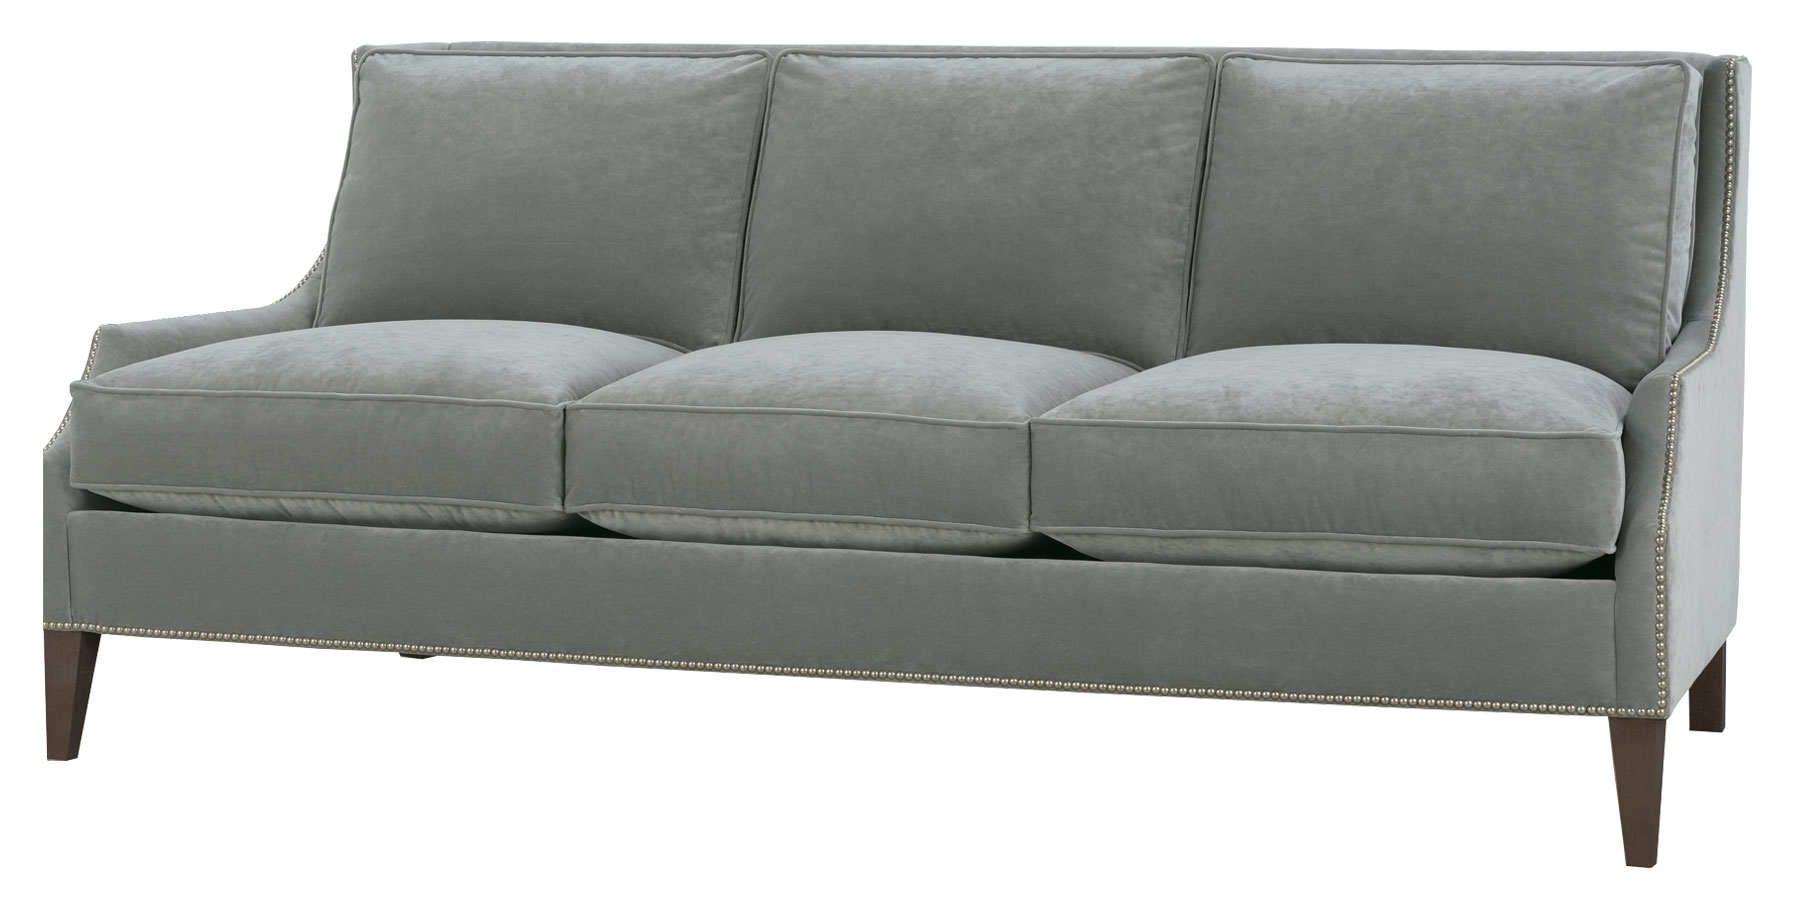 Apartment Size Sofas Intended For Preferred Awesome Apartment Size Sofa 36 About Remodel Office Sofa Ideas (View 1 of 15)